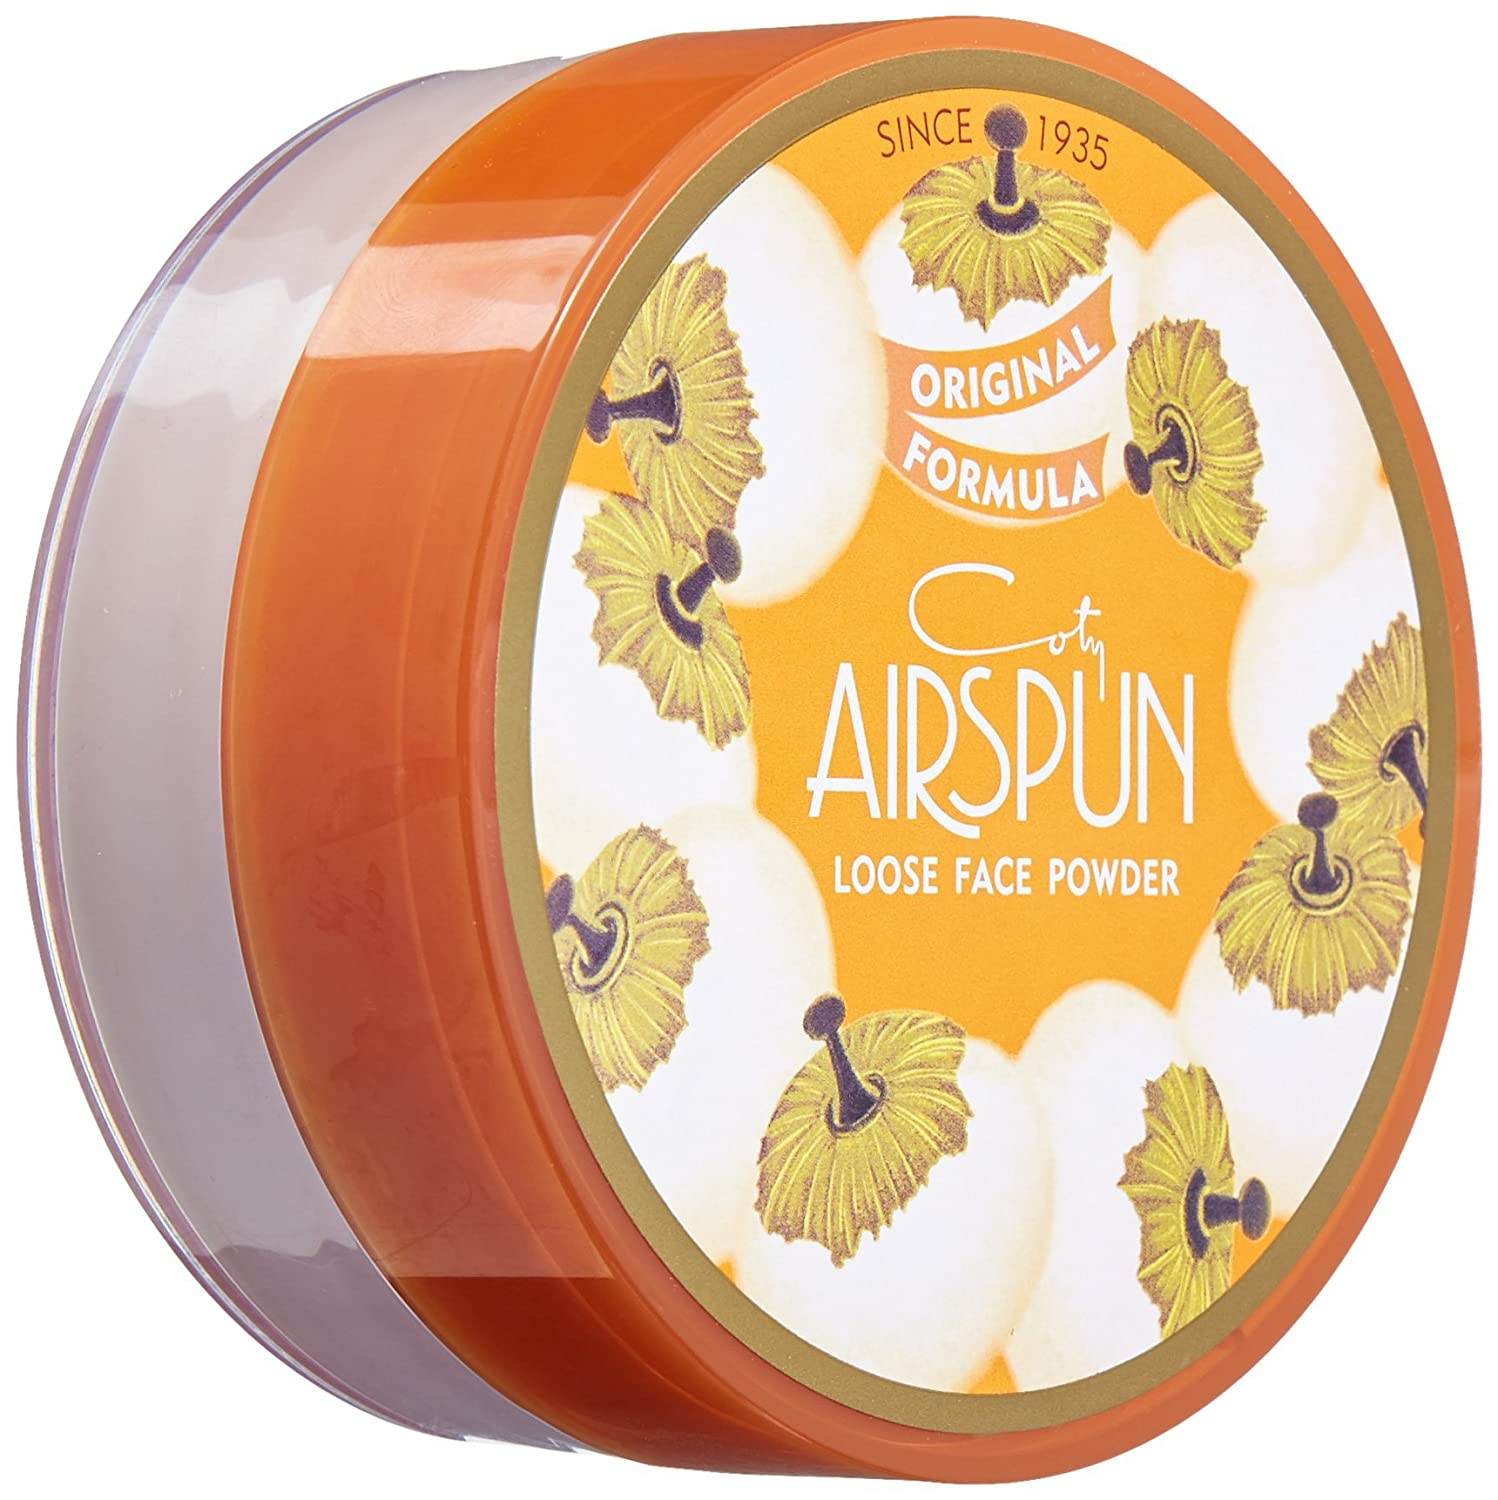 Amazon coty airspun loose face powder 23 oz honey beige light amazon coty airspun loose face powder 23 oz honey beige light peach tone loose face powder for setting or foundation lightweight long lasting geenschuldenfo Image collections